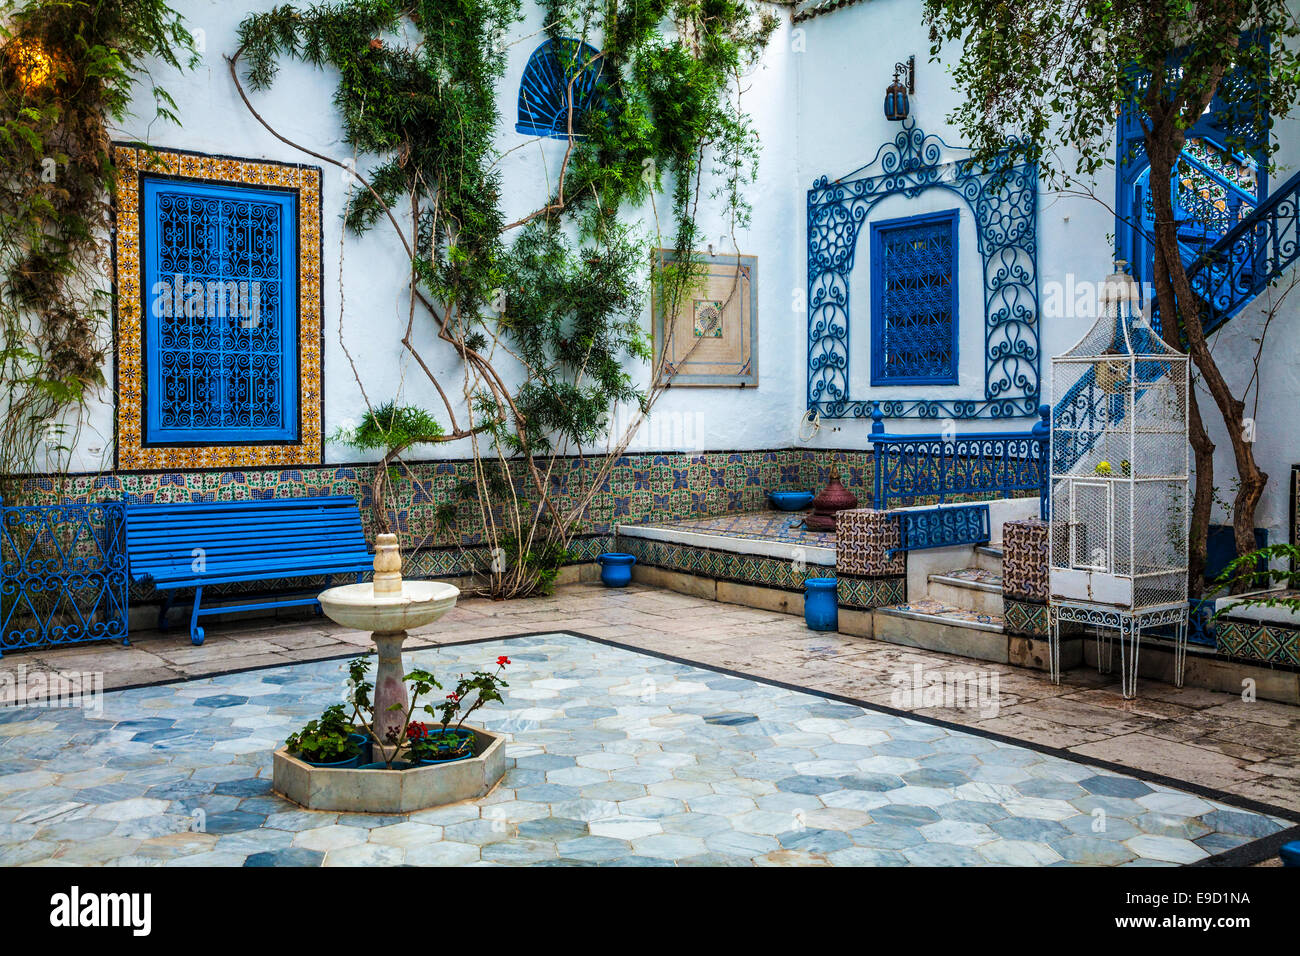 A Traditional Courtyard In A Typical 18th Century Arab